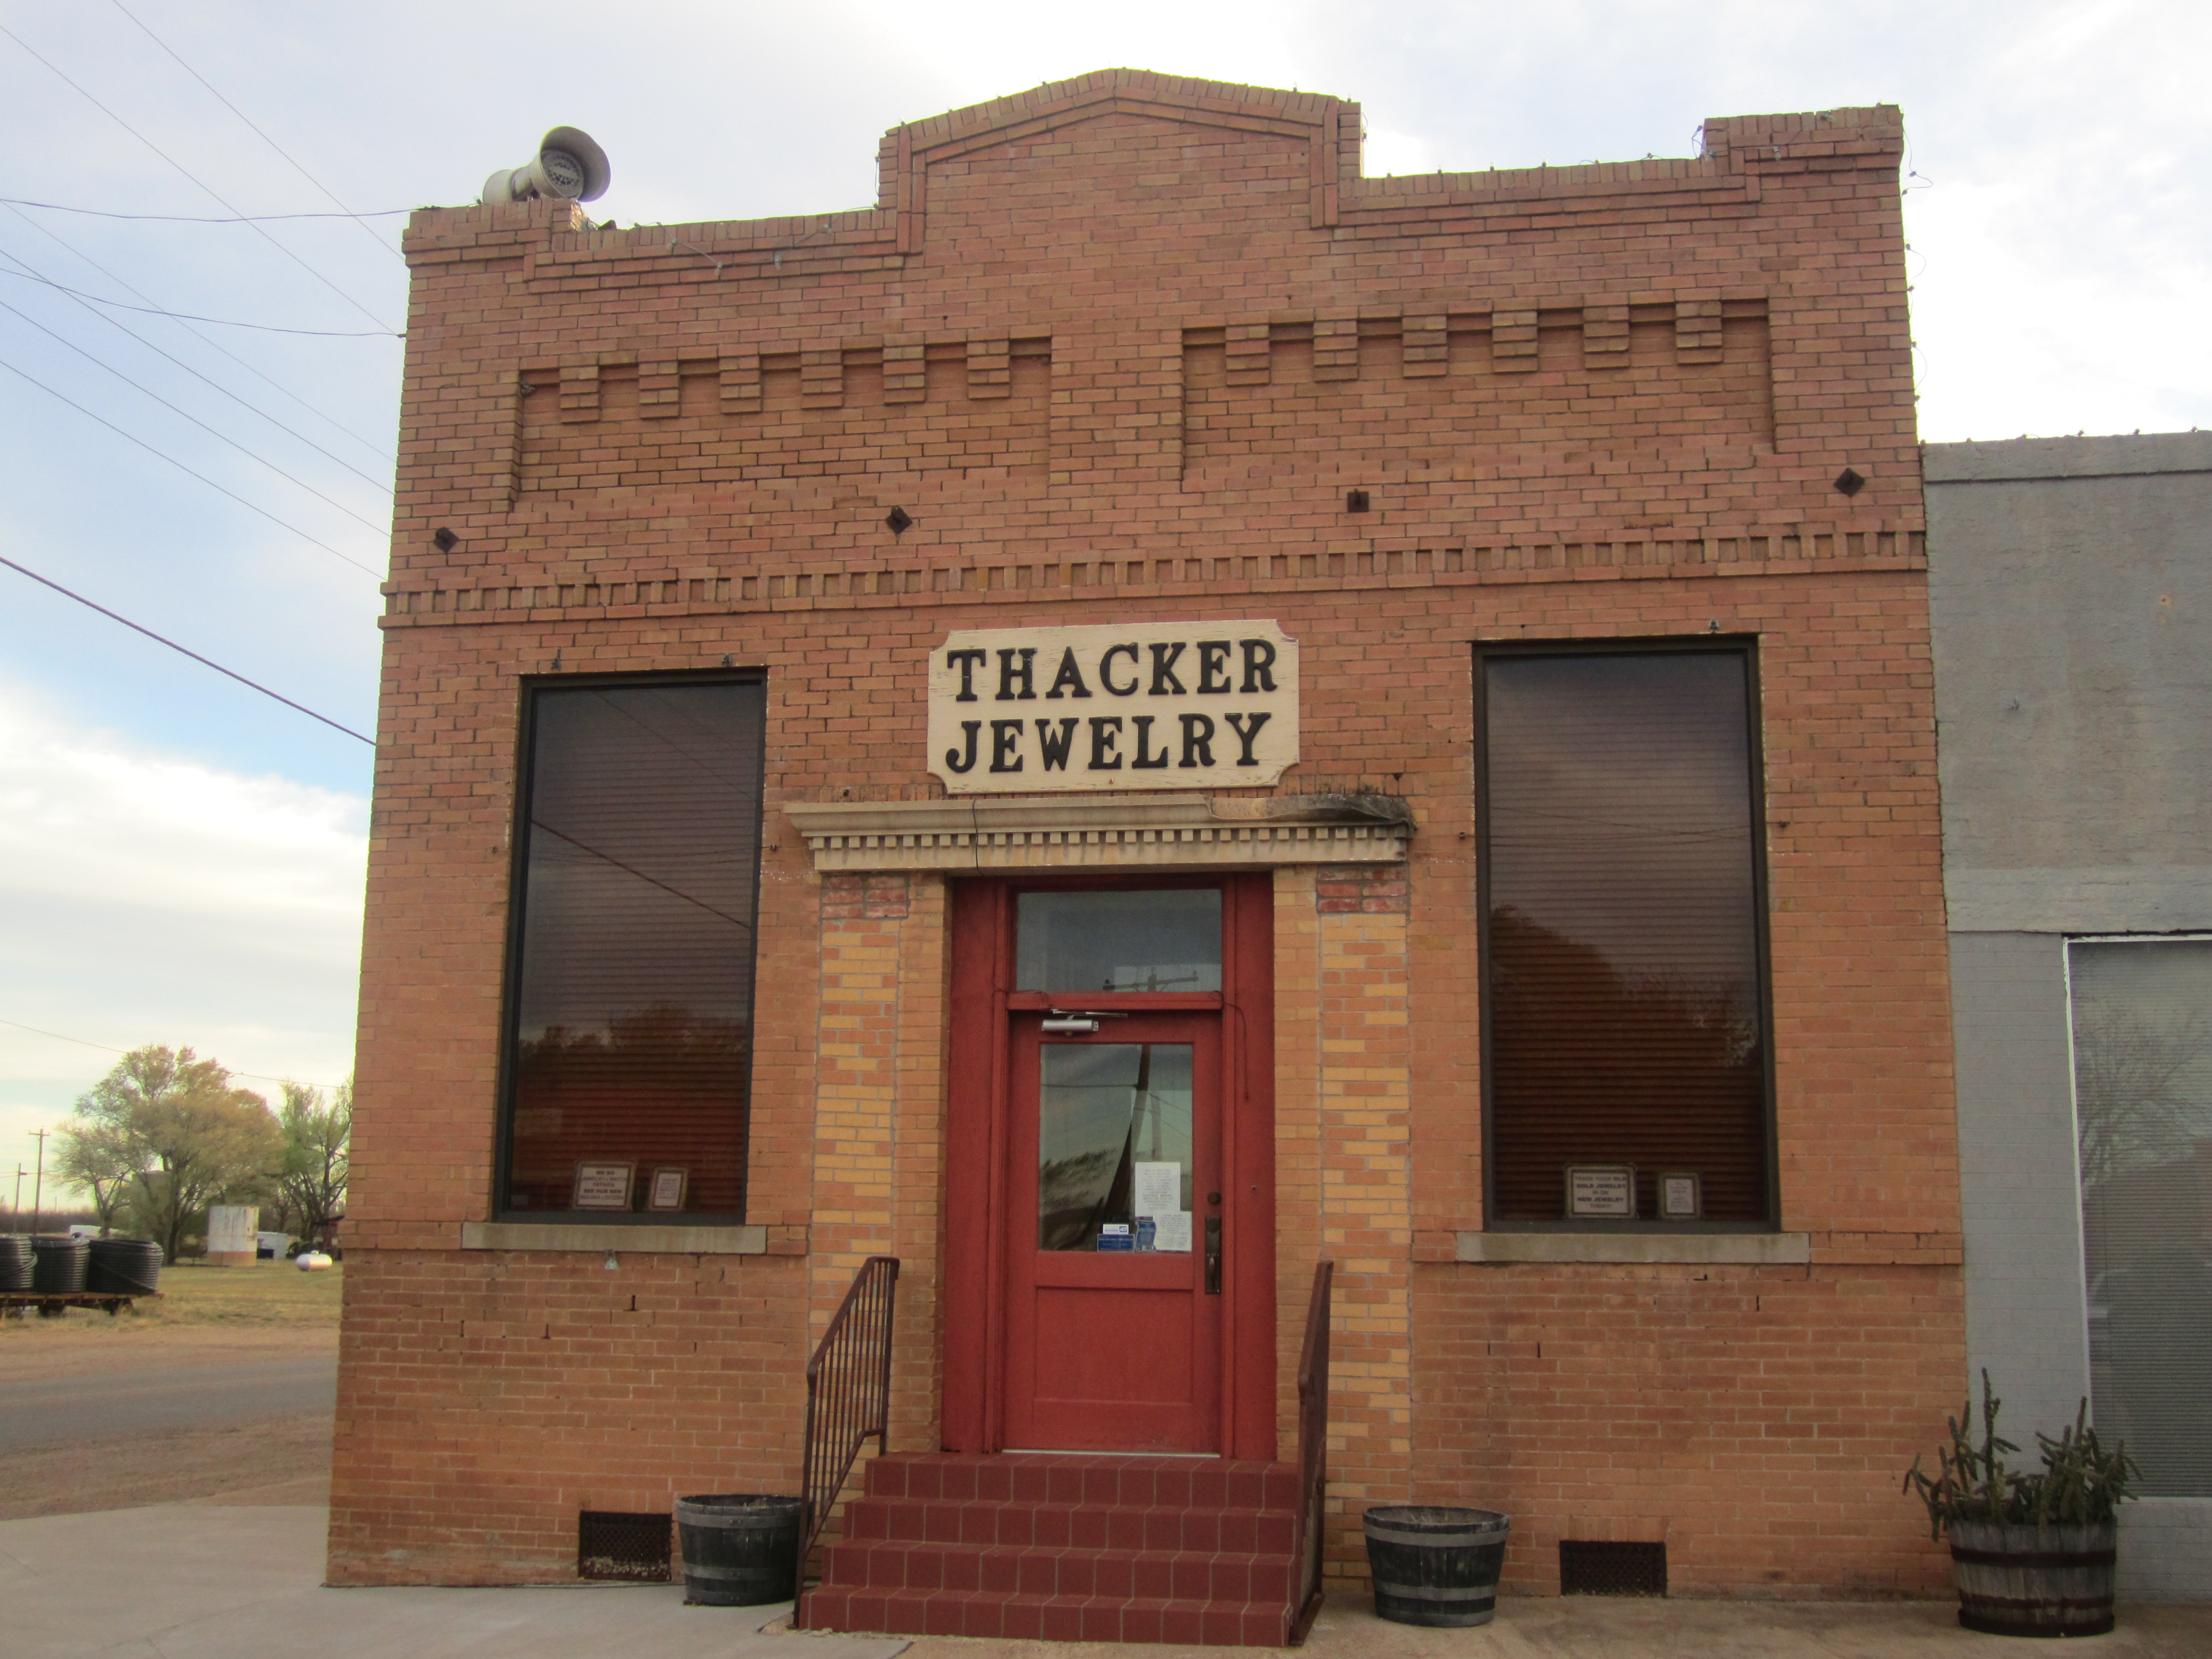 file thacker jewelry roaring springs tx img 1569 jpg